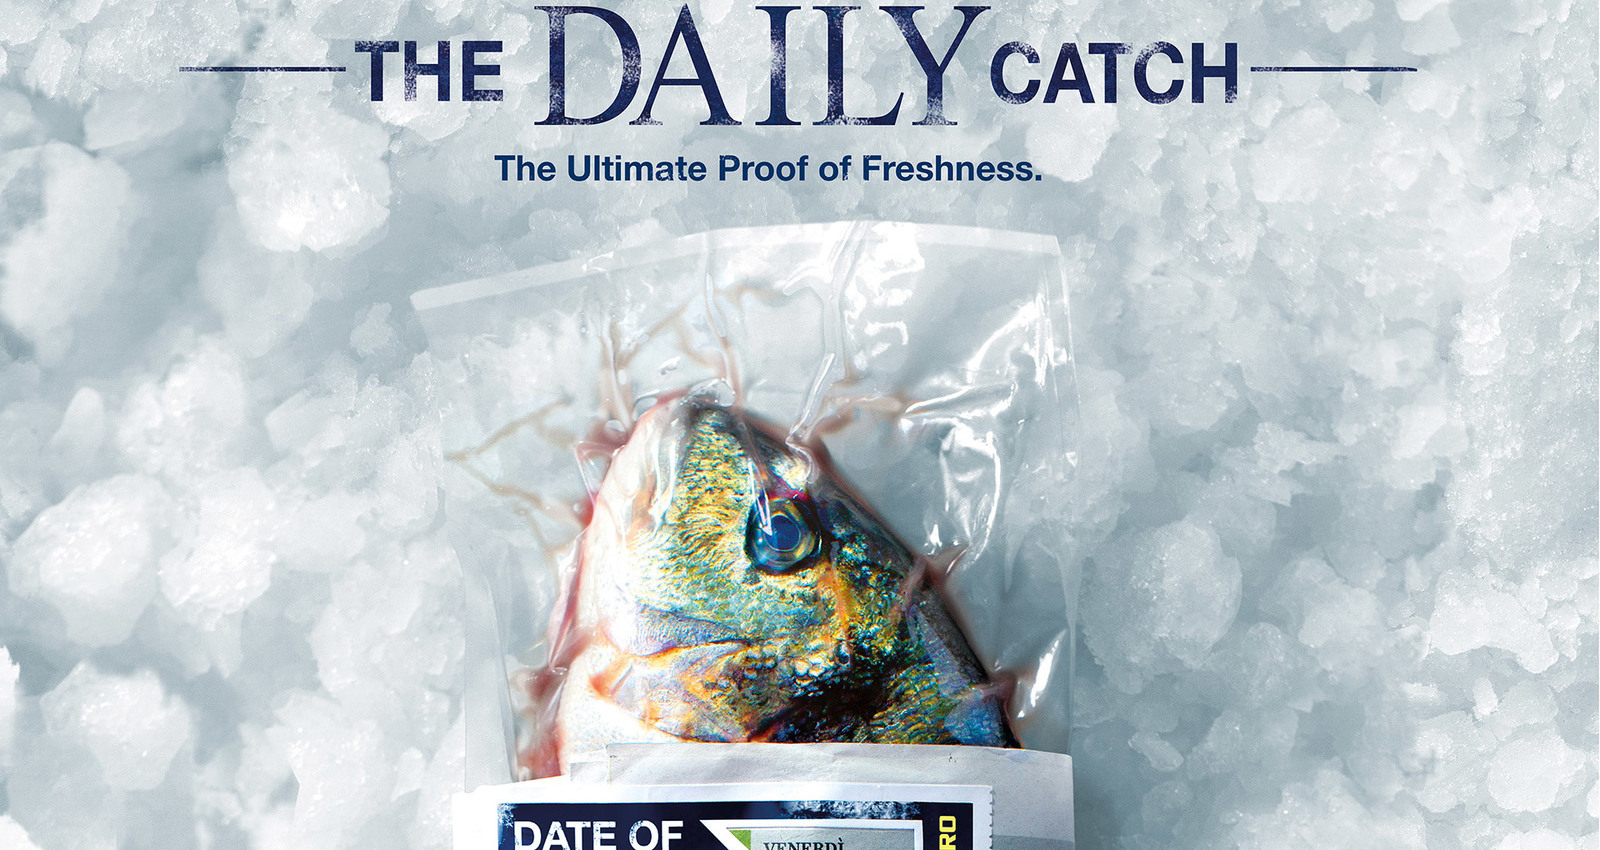 The Daily Catch